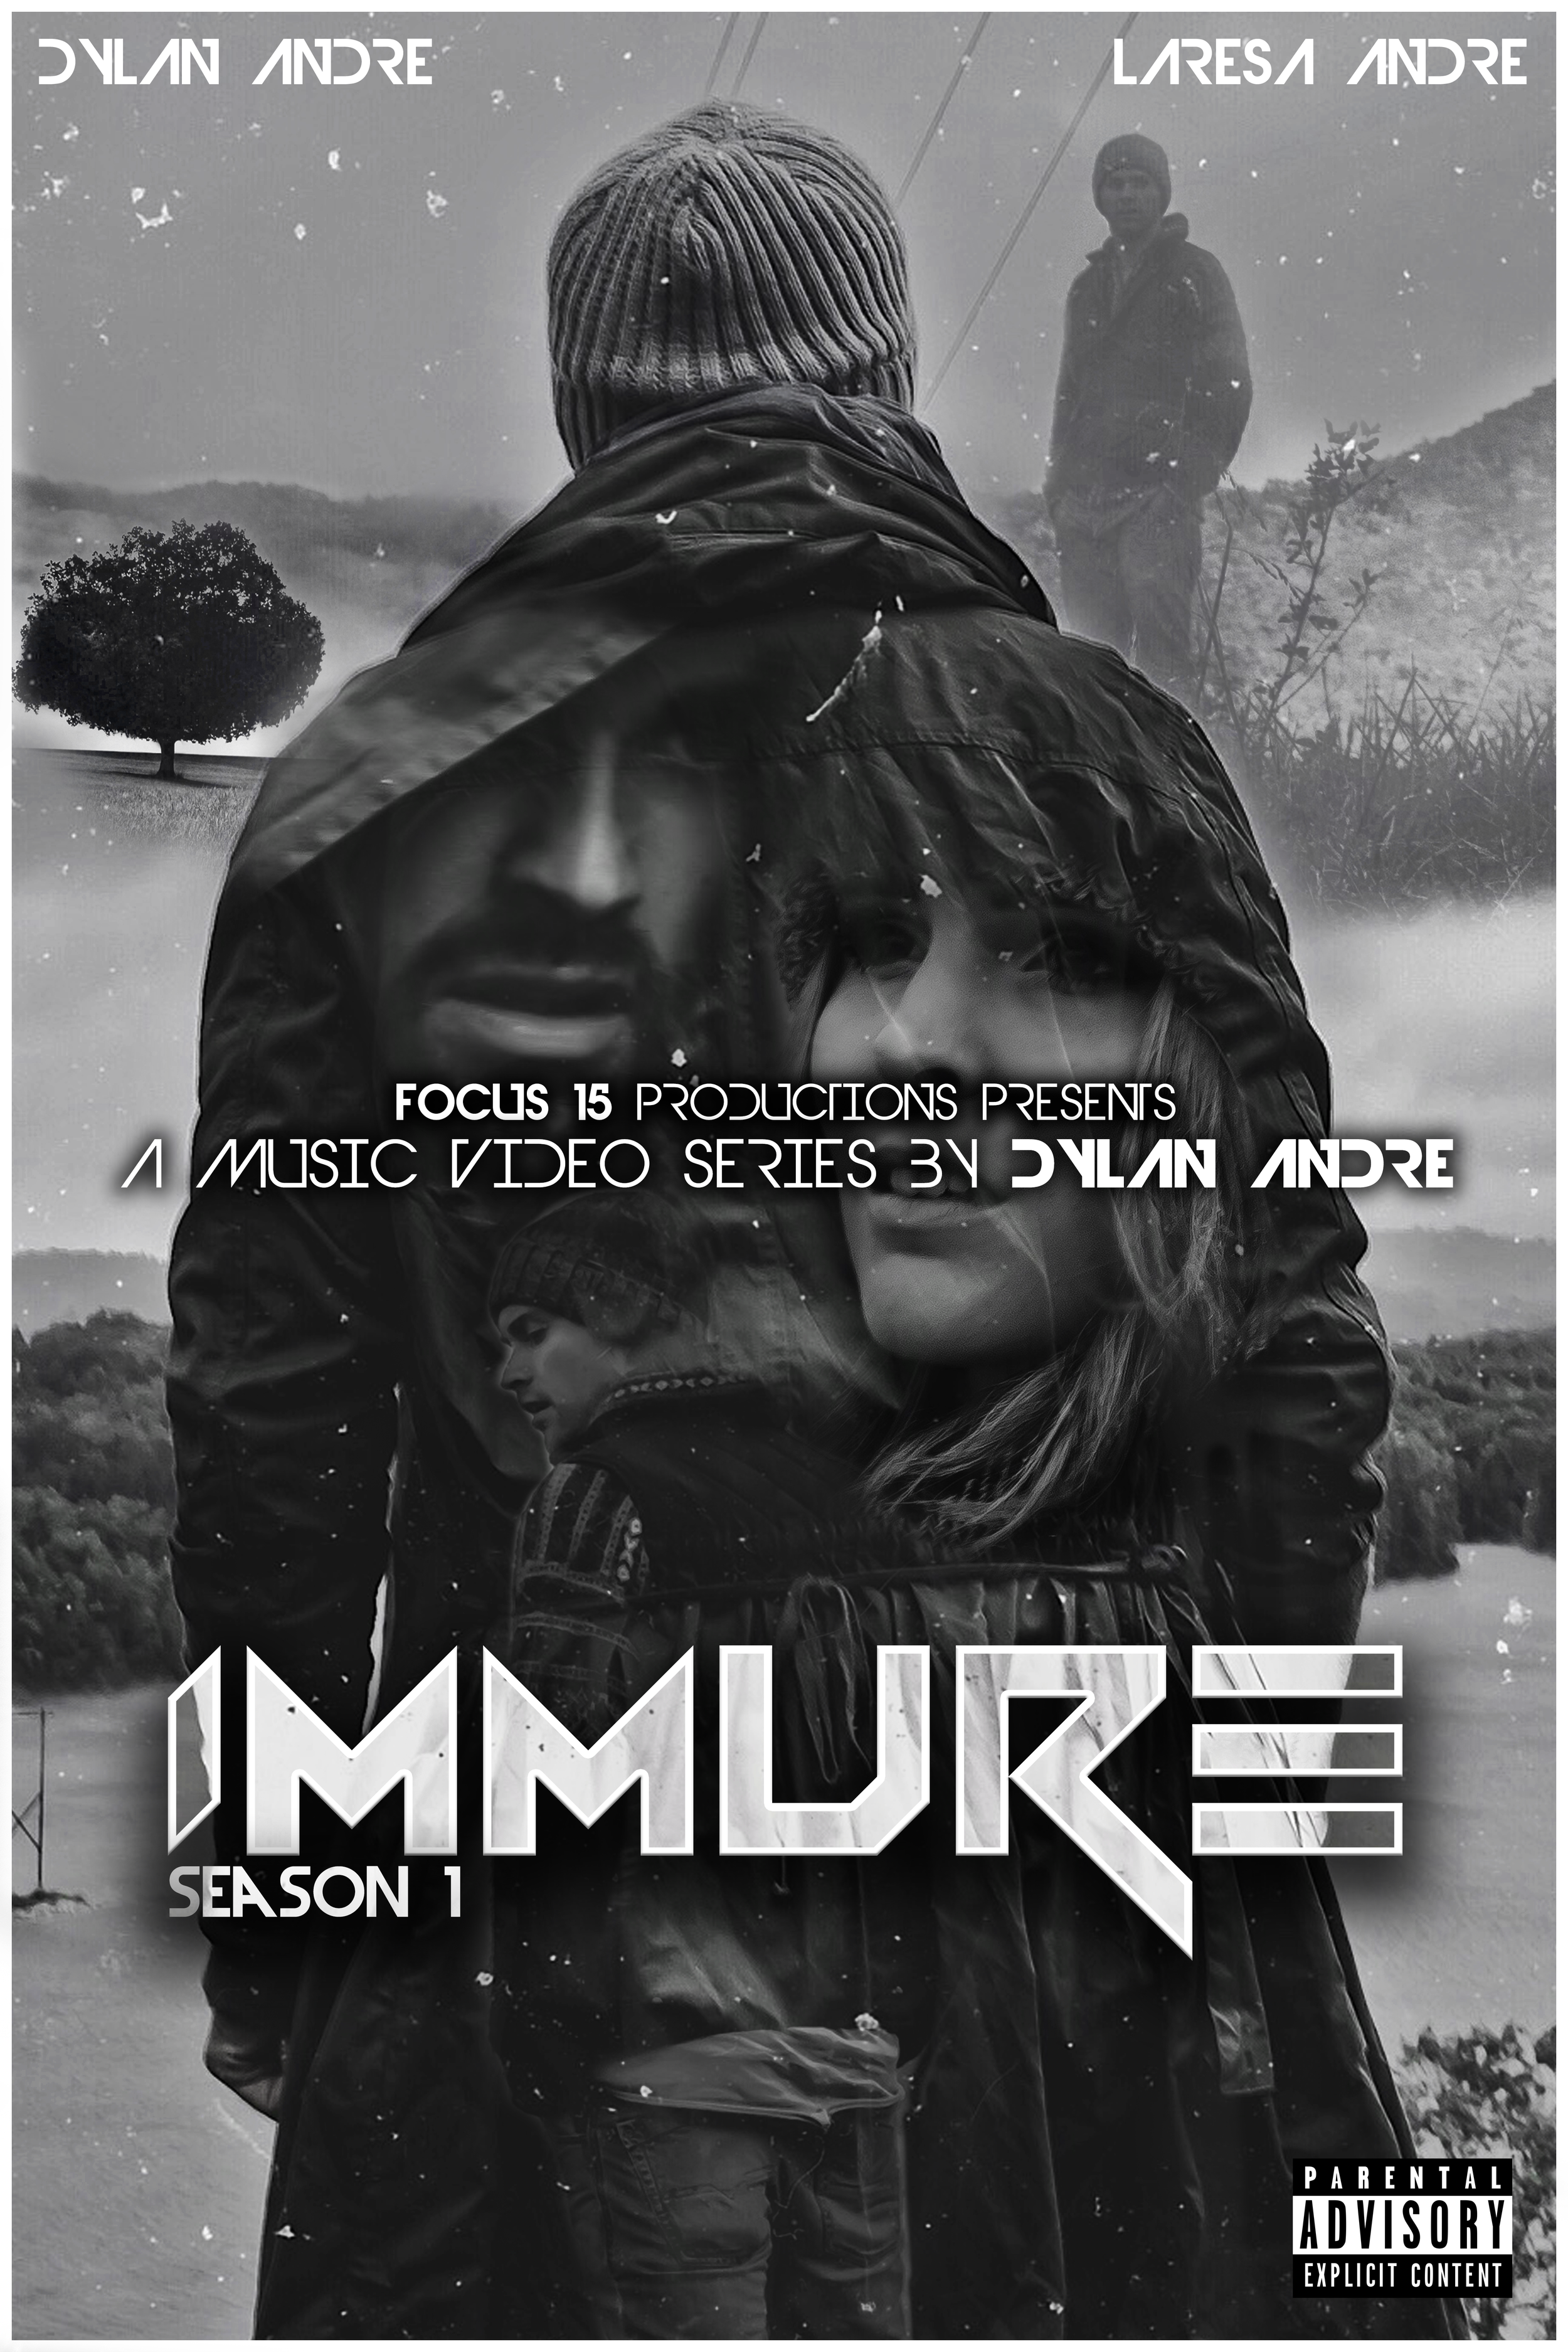 IMMURE_S1 POSTER 2.PNG